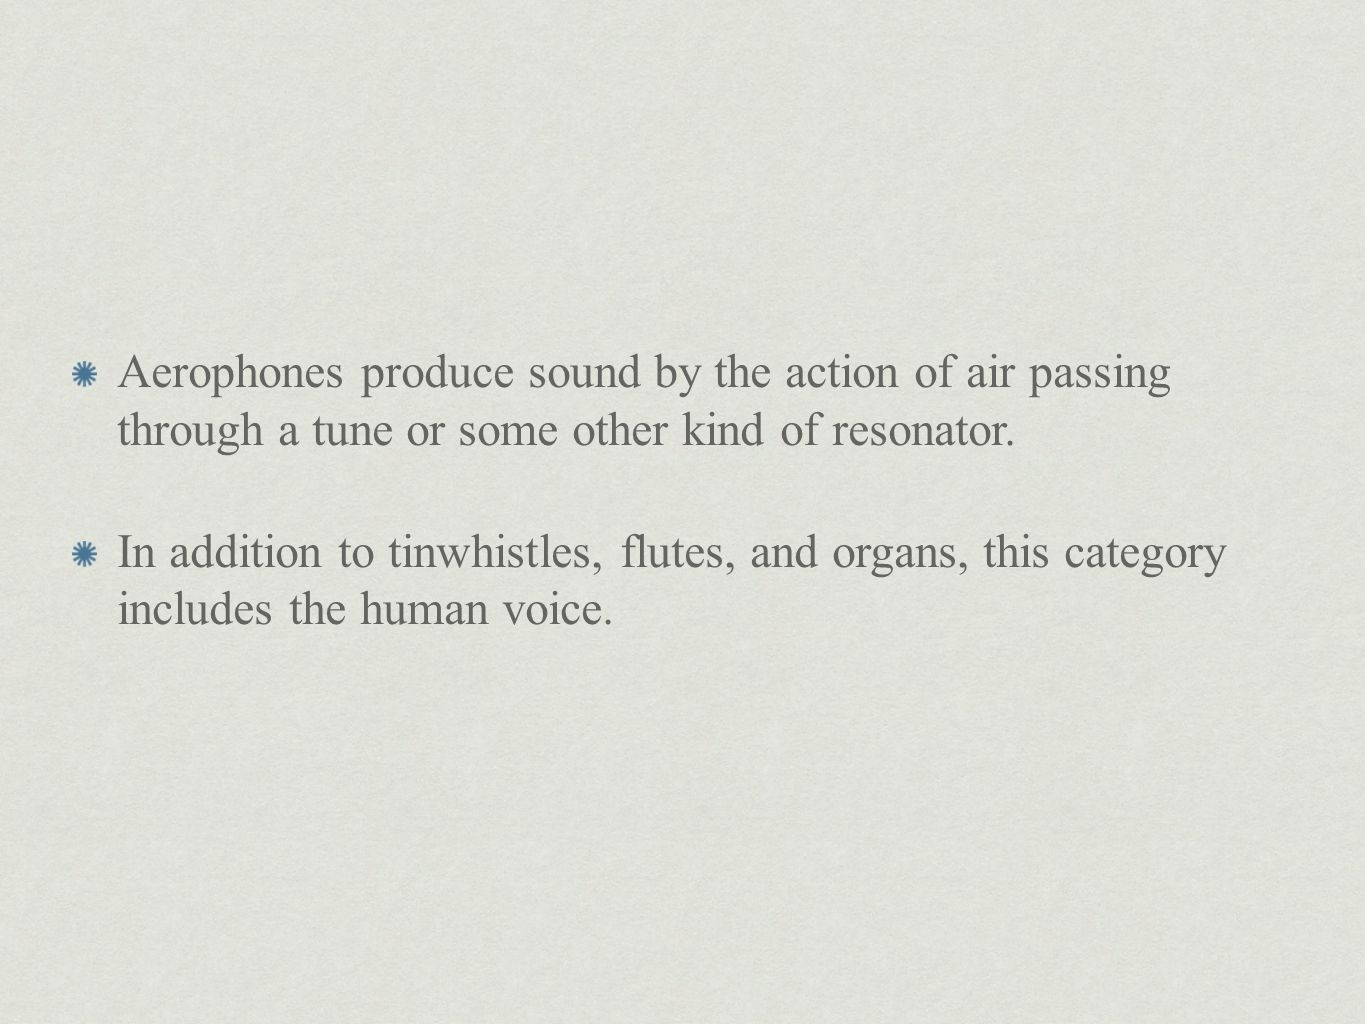 Aerophones produce sound by the action of air passing through a tune or some other kind of resonator.